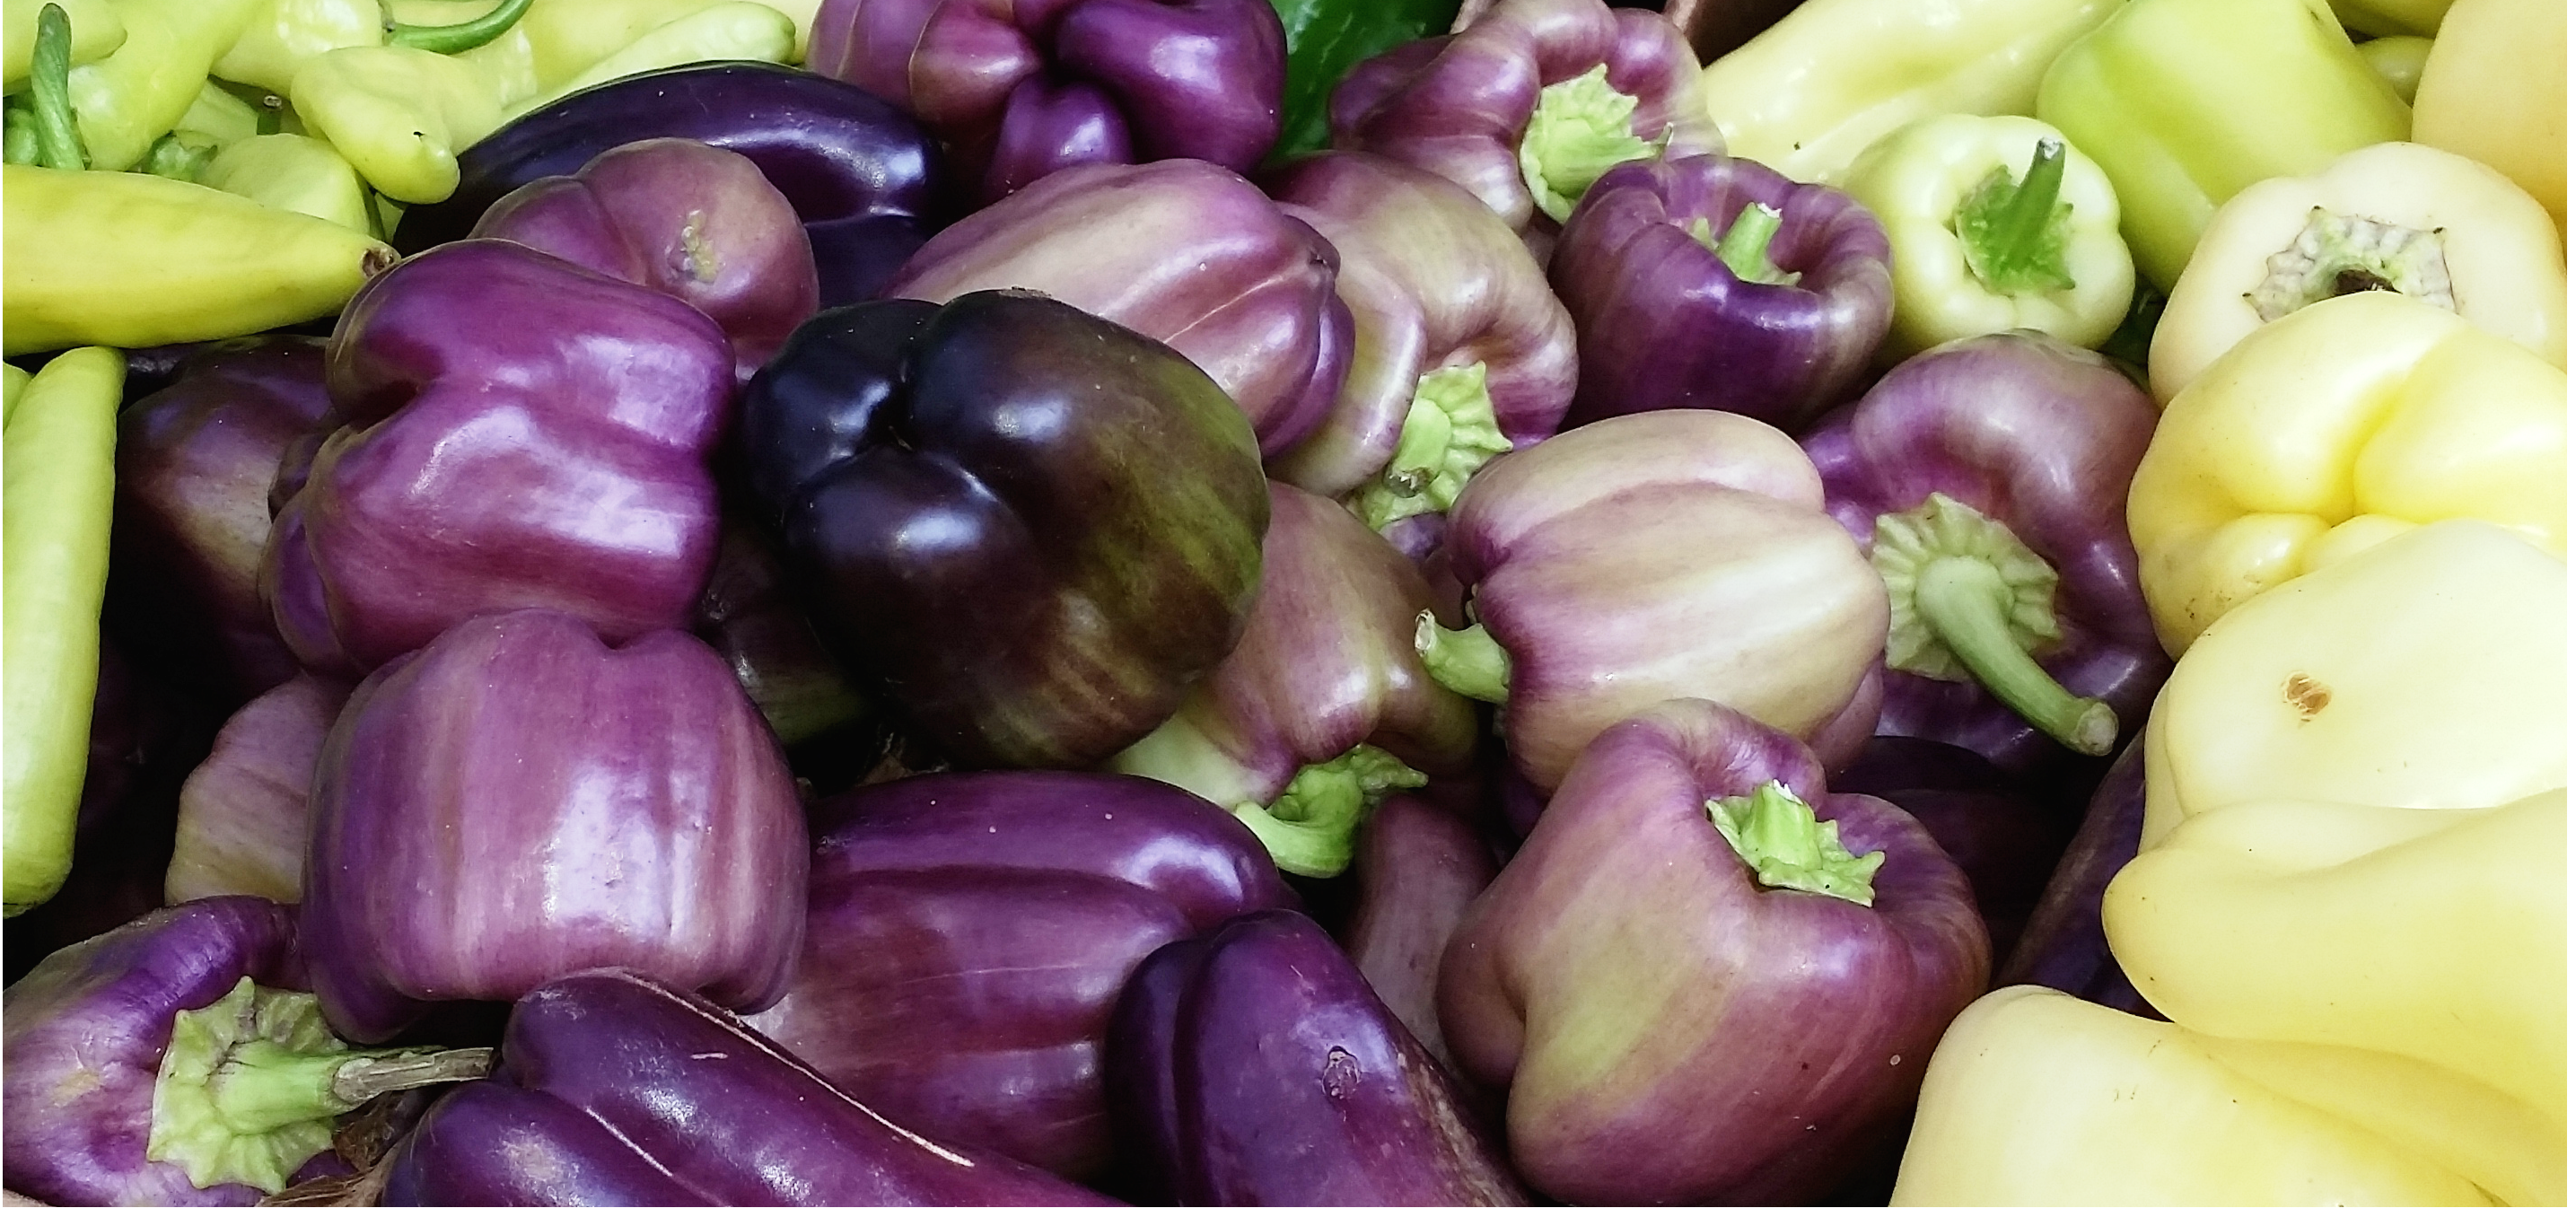 Organic purple bell peppers on sale at the SLU Farmer's Market in mid-August. Seattle 2014